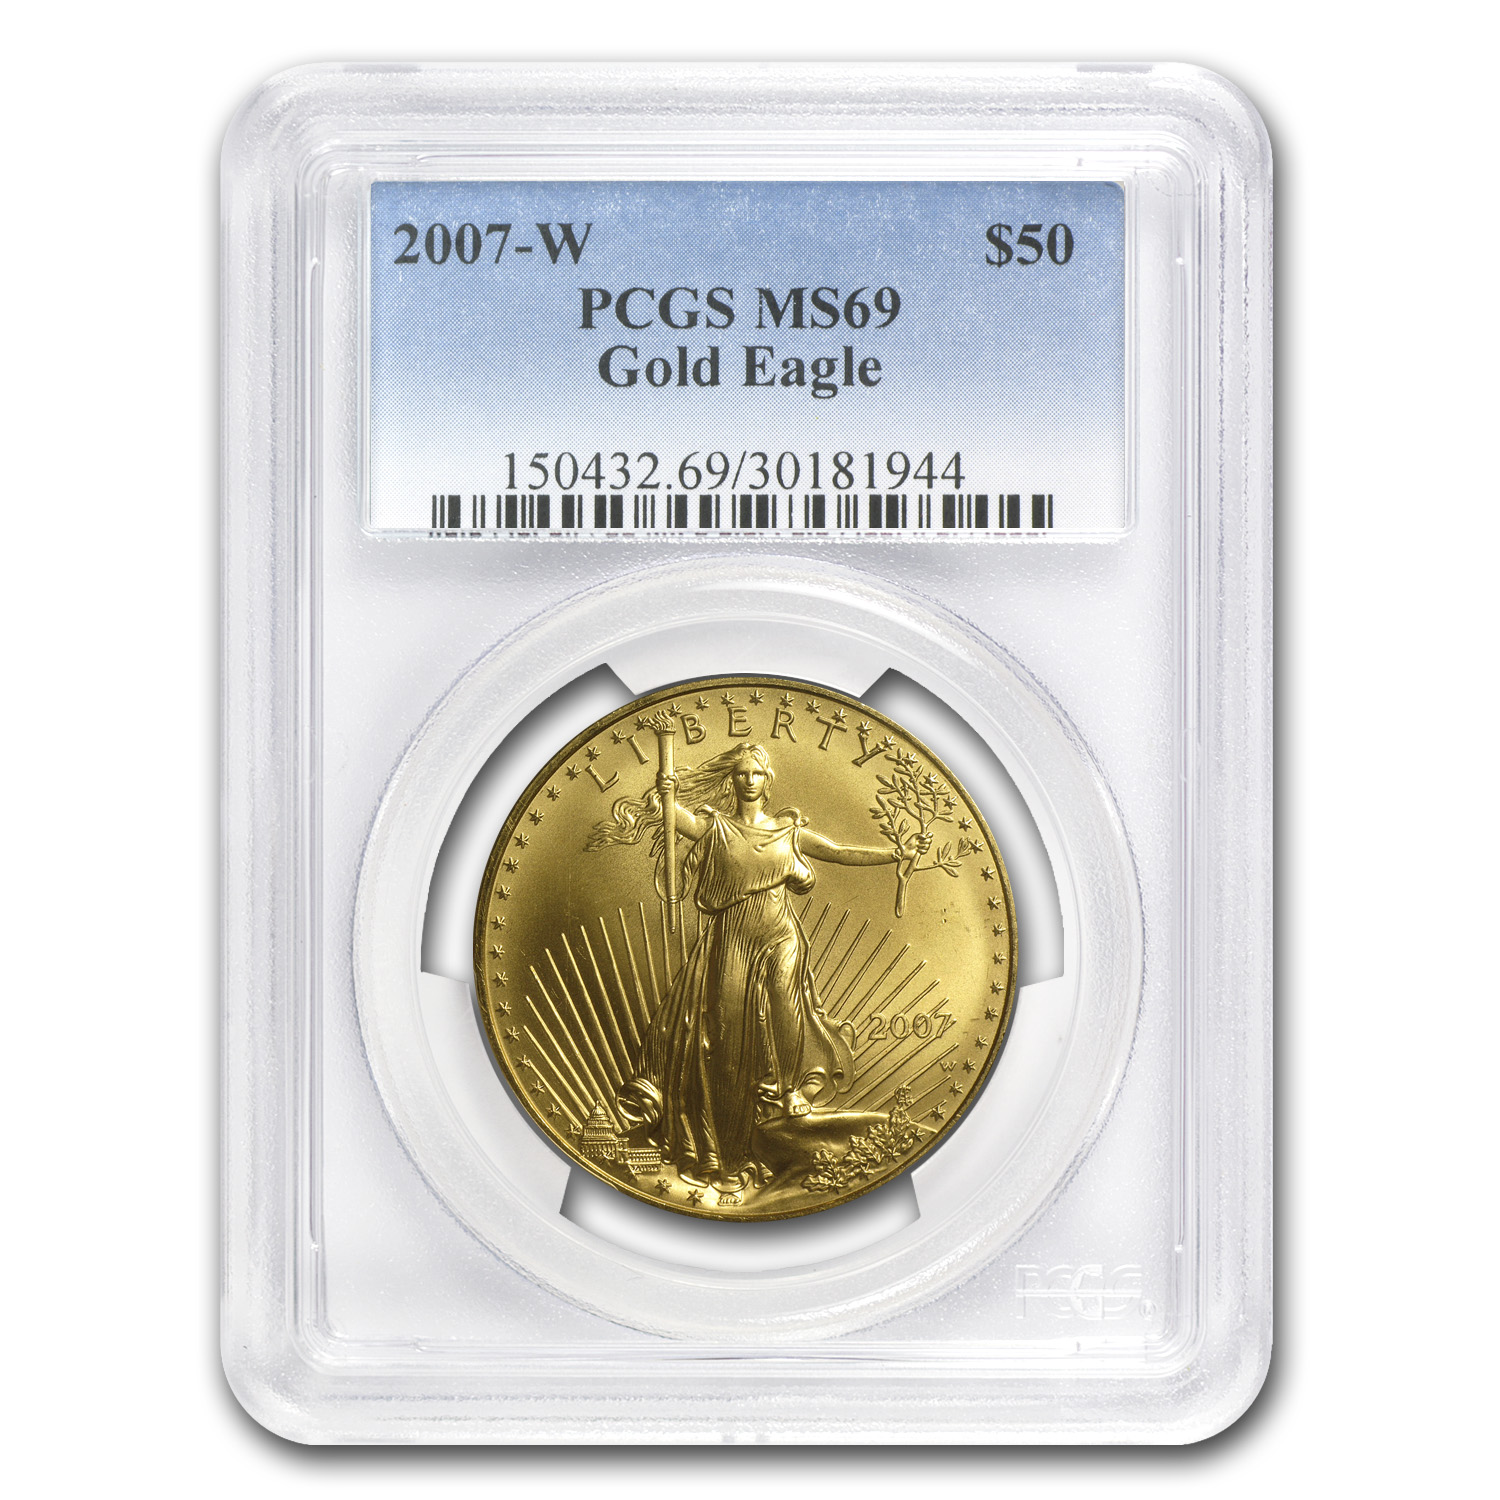 2007-W 1 oz Burnished Gold American Eagle MS-69 PCGS